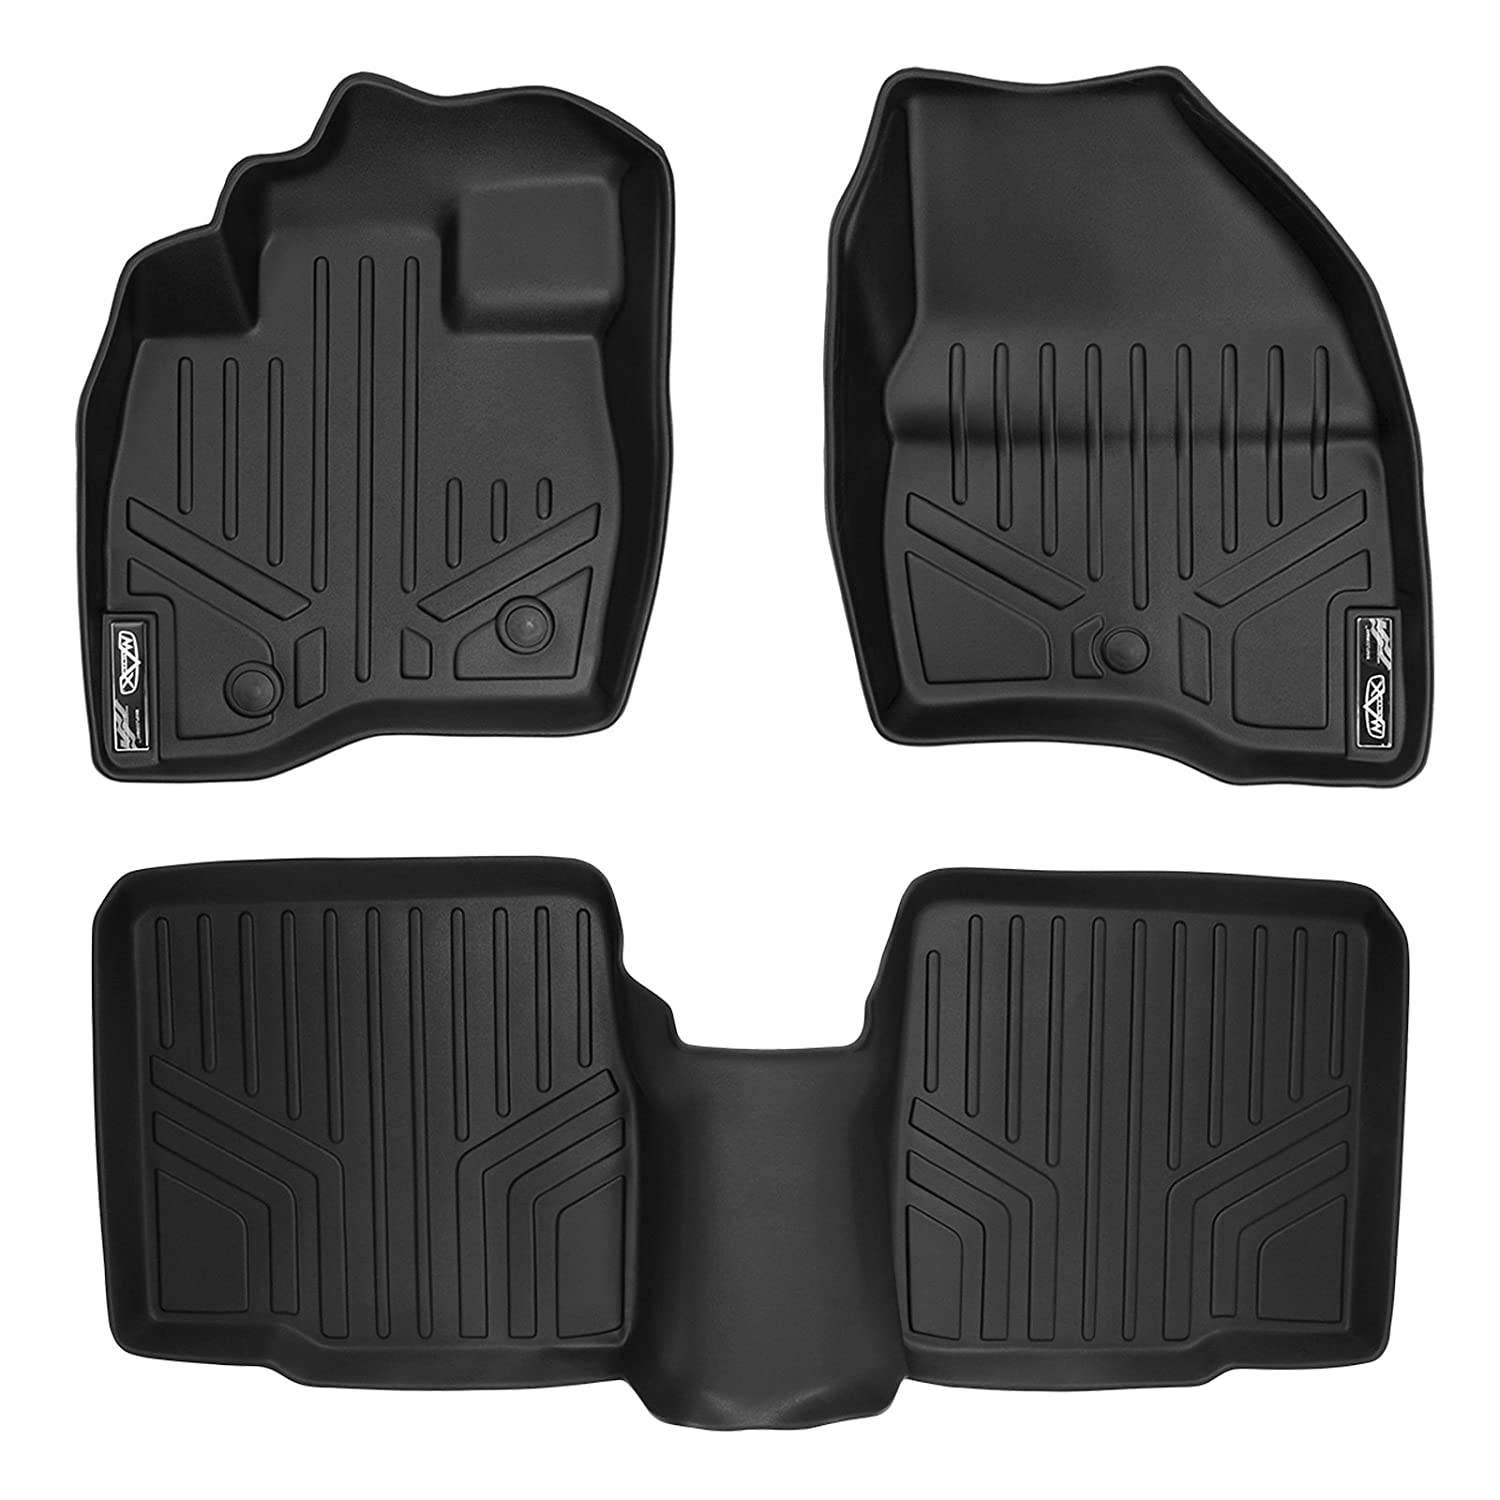 SMARTLINER Floor Mats 2 Row Liner Set Black for 2017-2018 Ford Explorer Without 2nd Row Center Console MAXLINER A0245/B0082